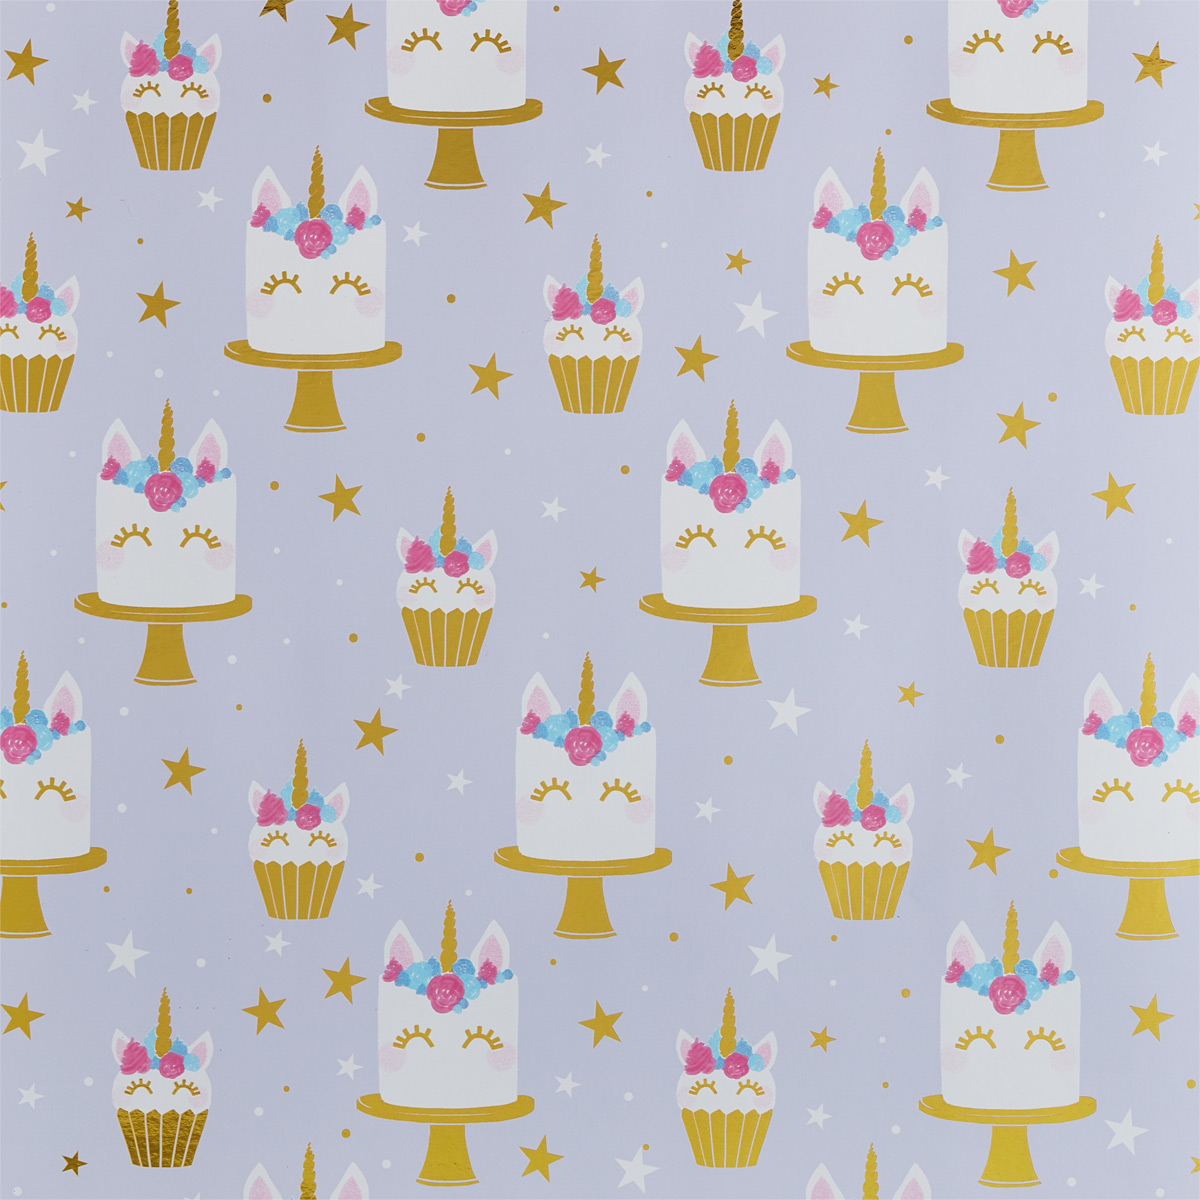 Sleeping Unicorn Wrapping Paper